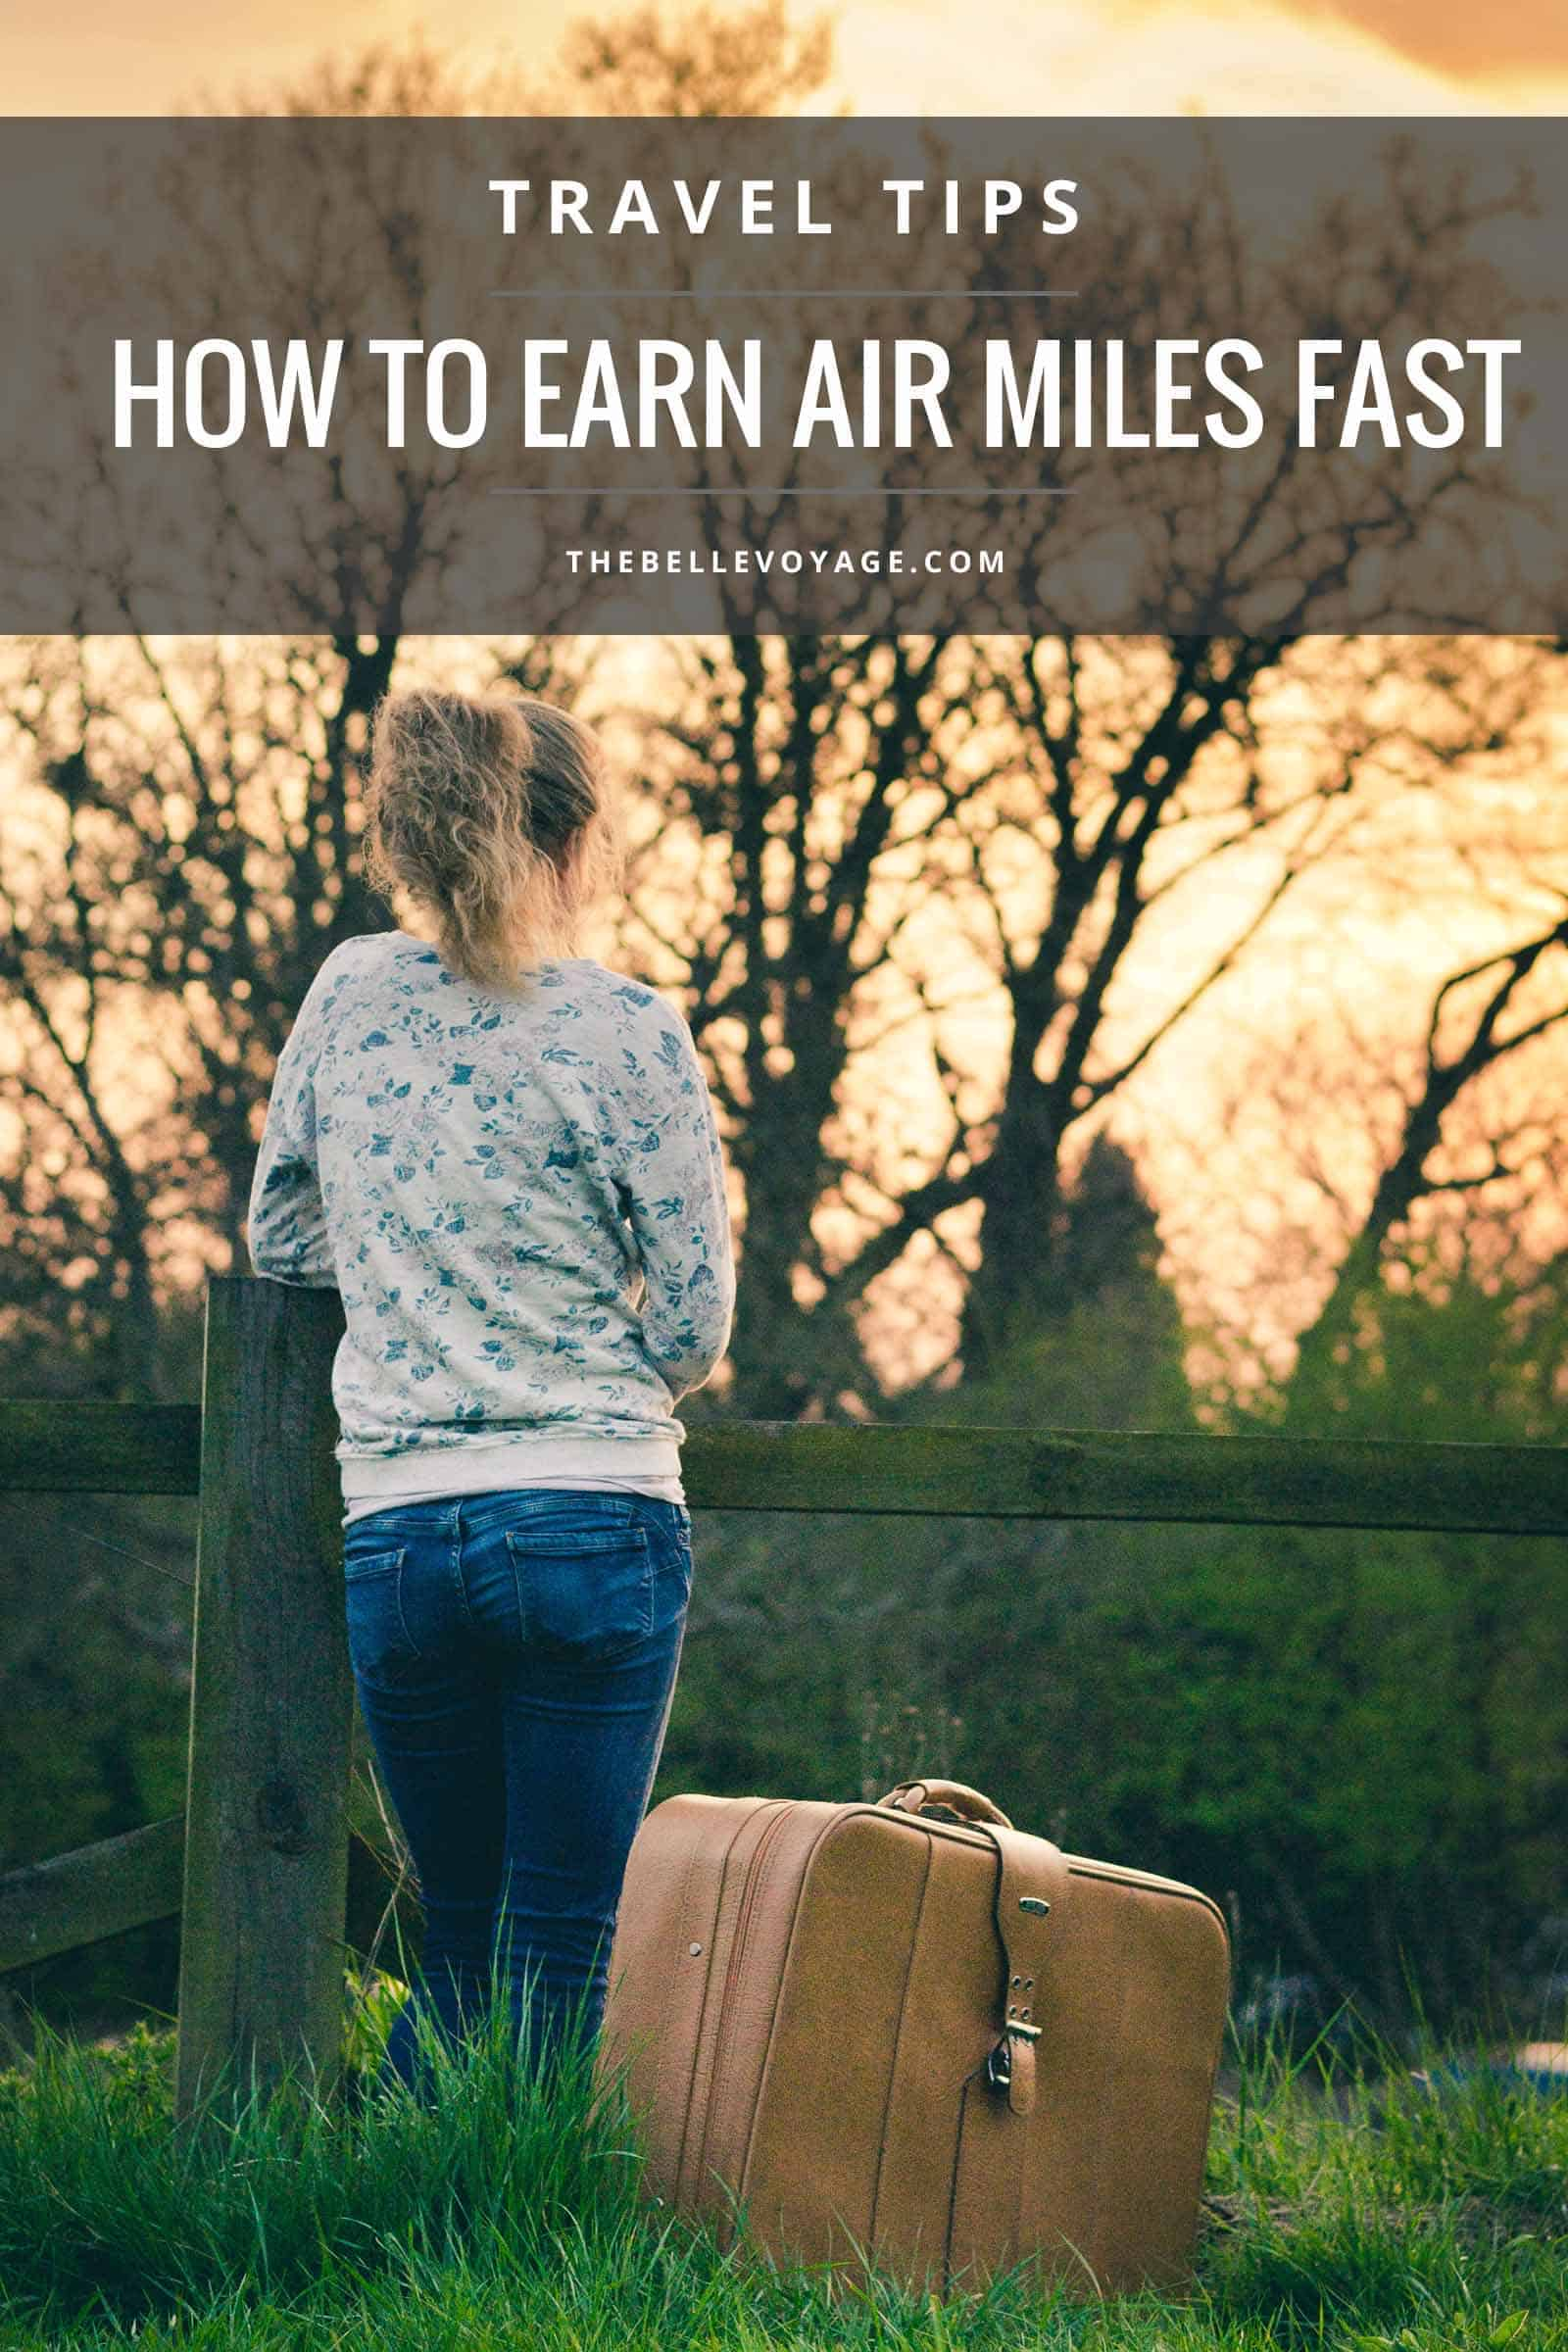 earn air miles fast travel tips